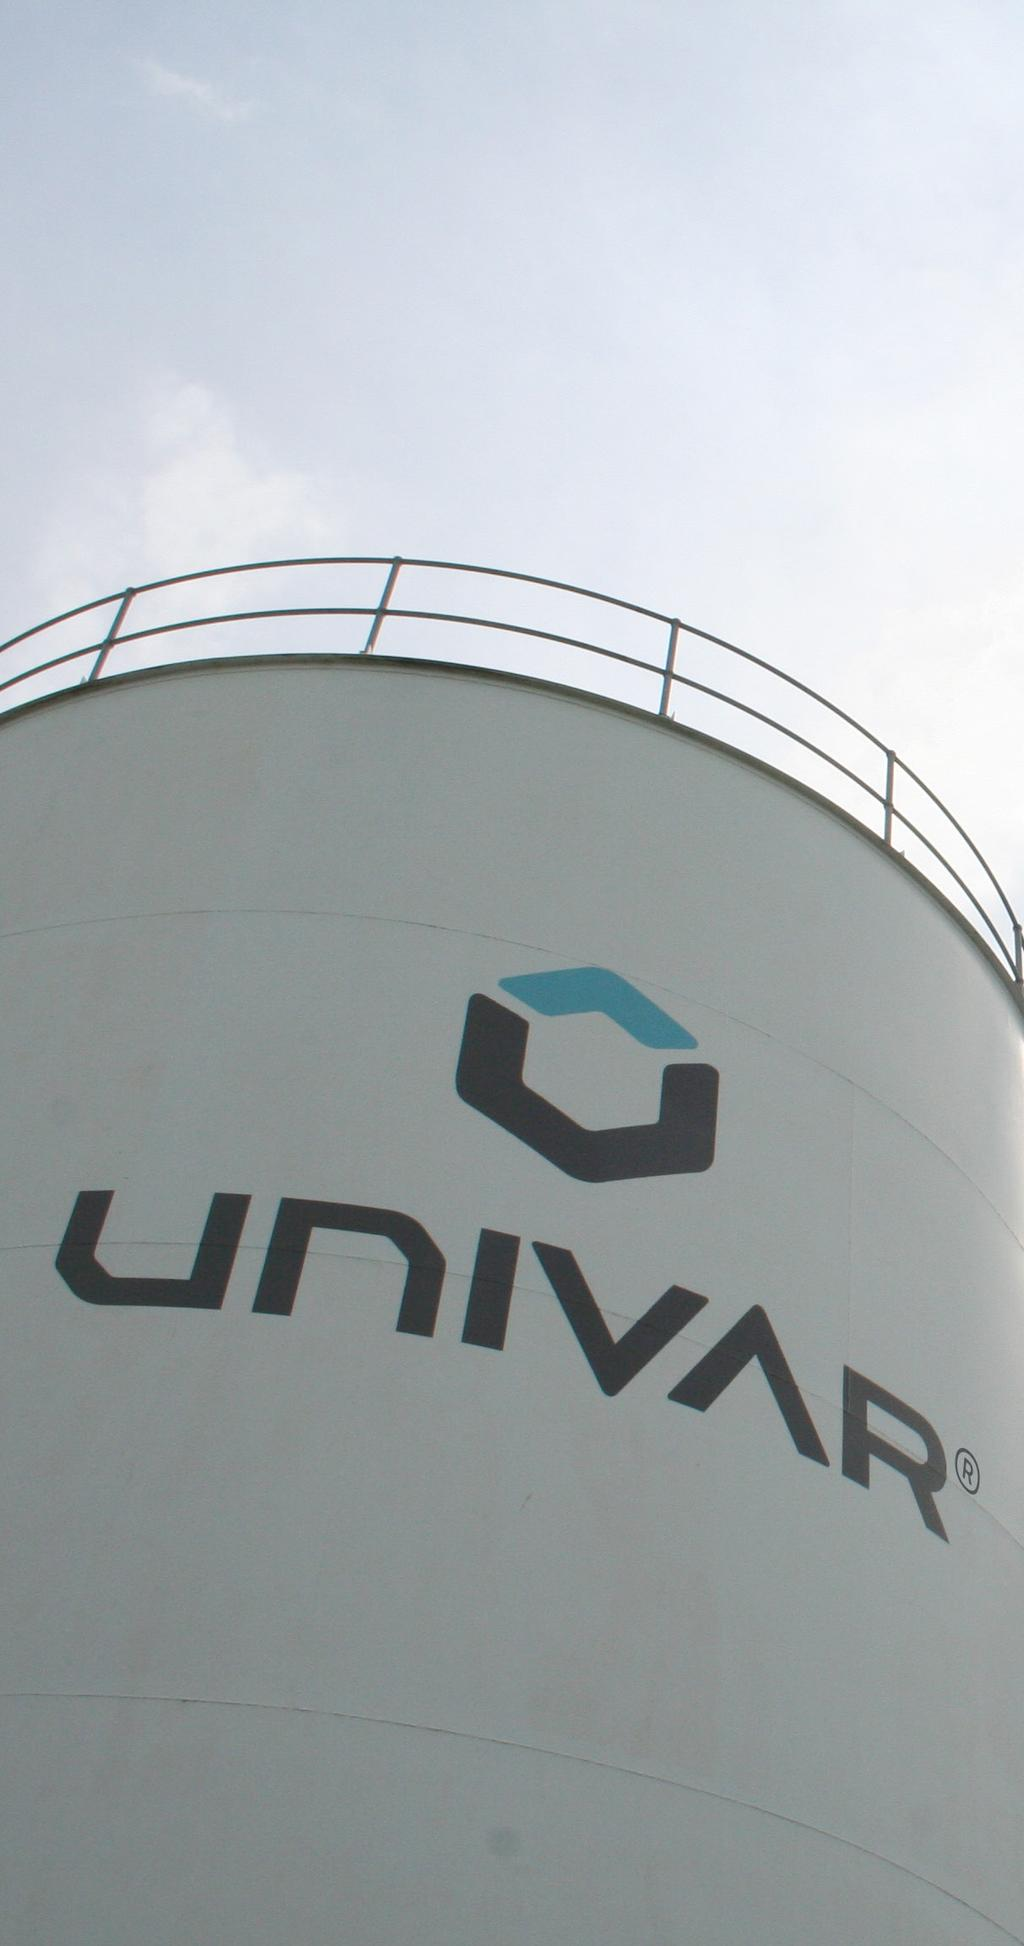 Contents Our vision... 2 Univar s guiding principles...3 A letter from Univar s CEO, Erik Fyrwald... 5 Honest and ethical conduct... 6 Compliance with laws, regulations and rules.